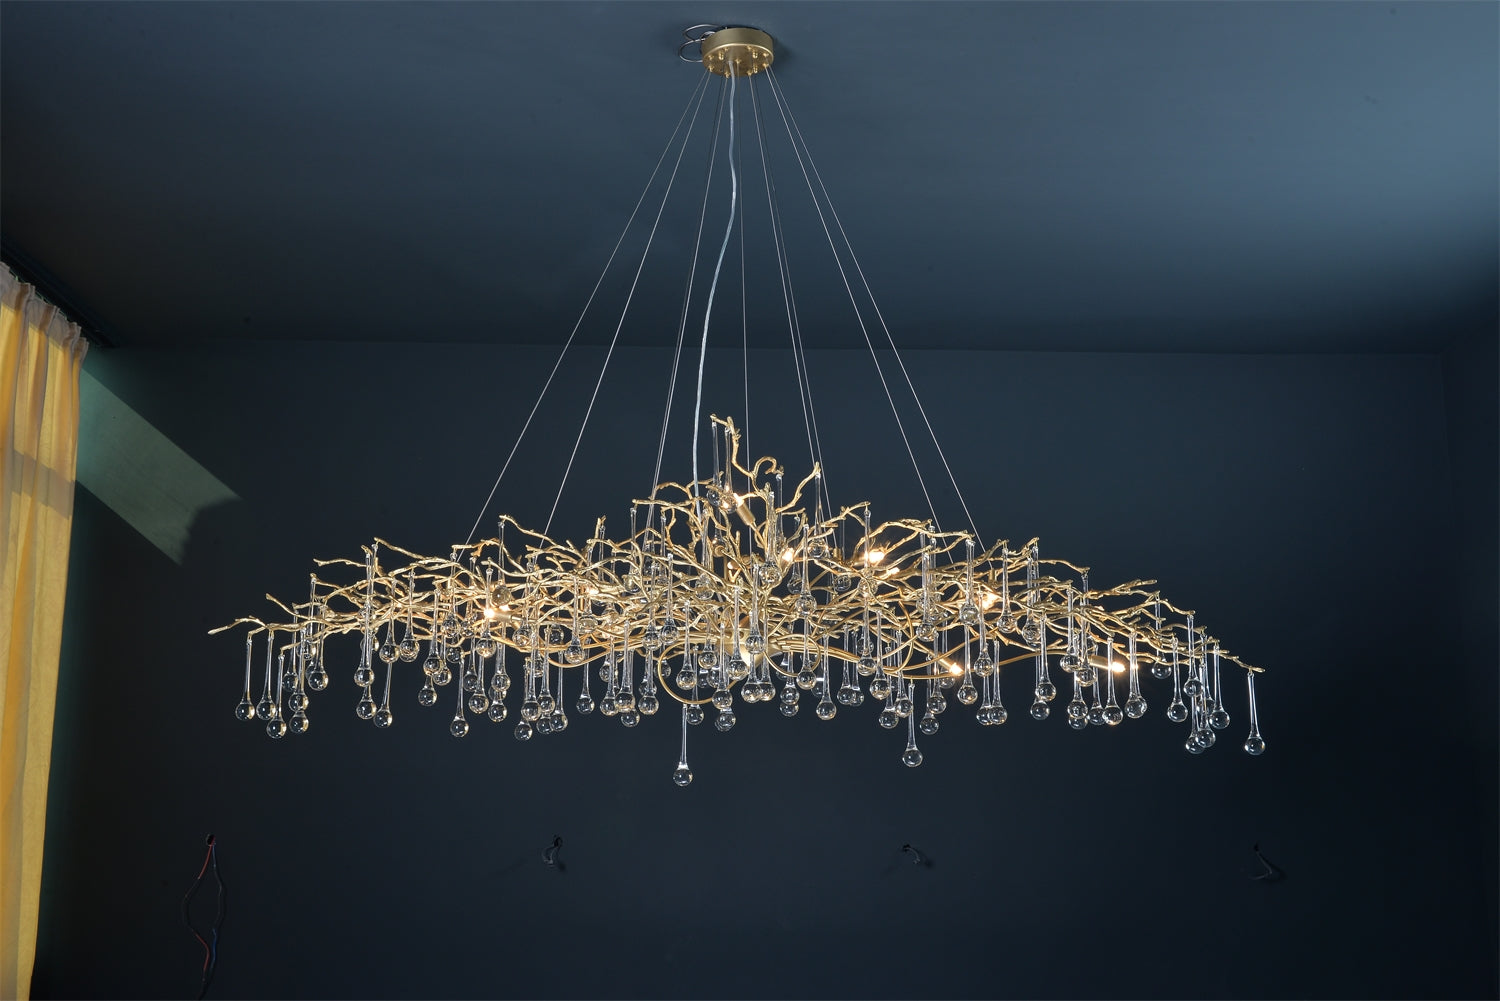 Solid Brass Branches Chandelier - Long Size - Aglaia lighting